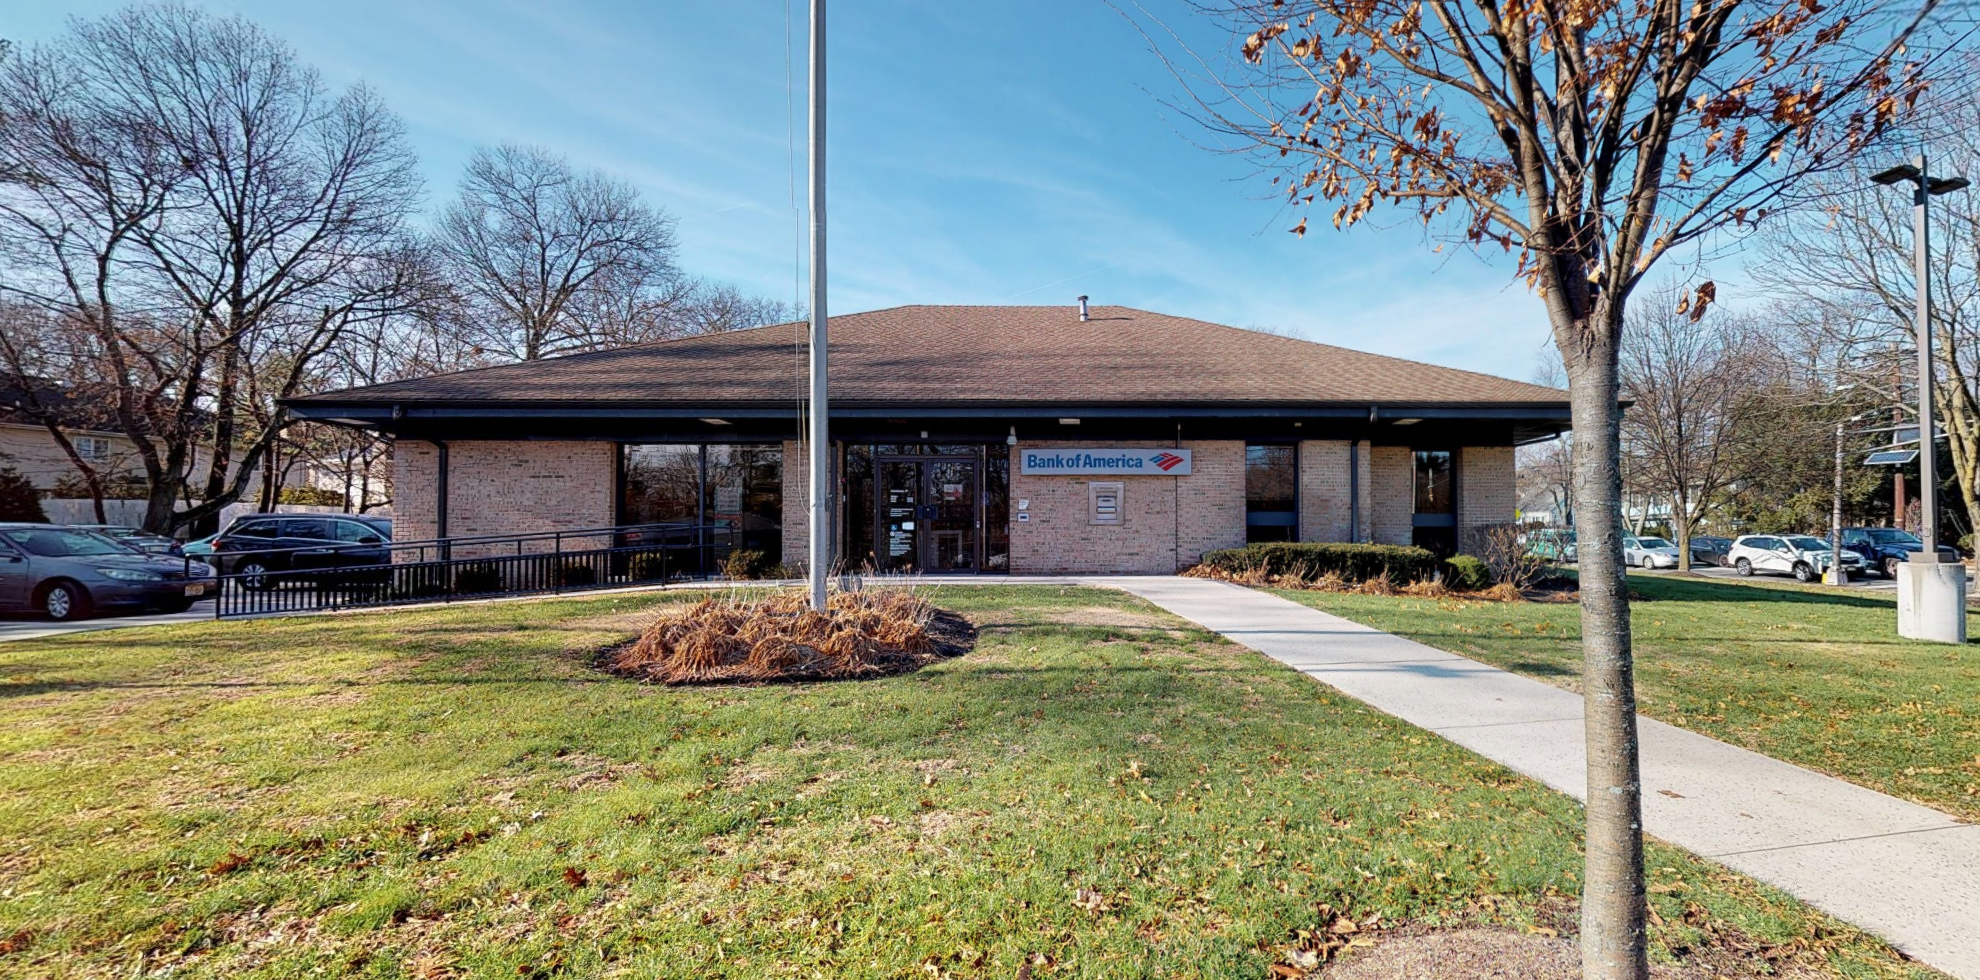 Bank of America financial center with drive-thru ATM | 425 Forest Ave, Paramus, NJ 07652